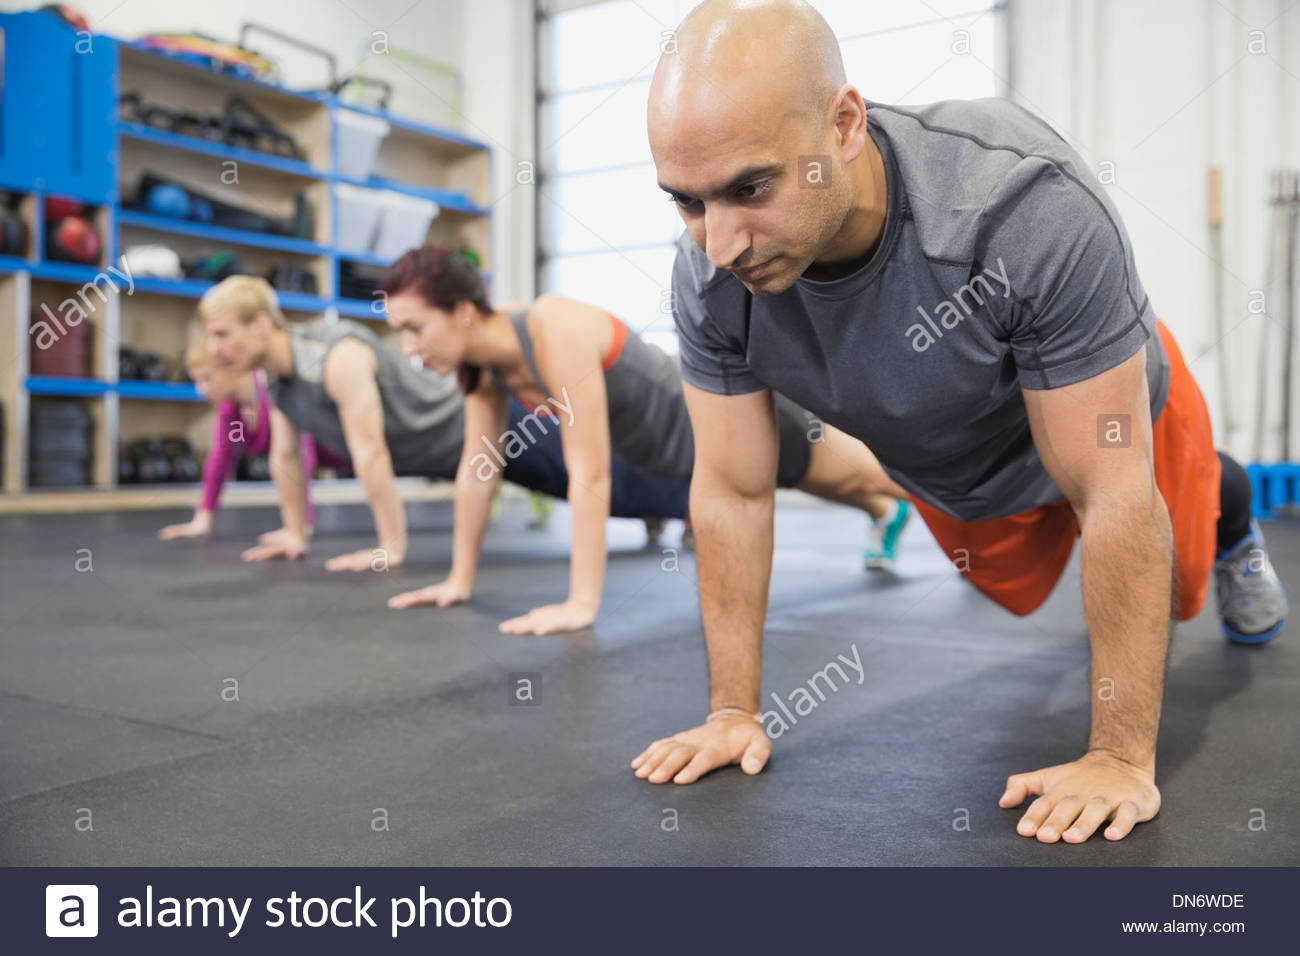 Man practicing plank hold - Stock Image